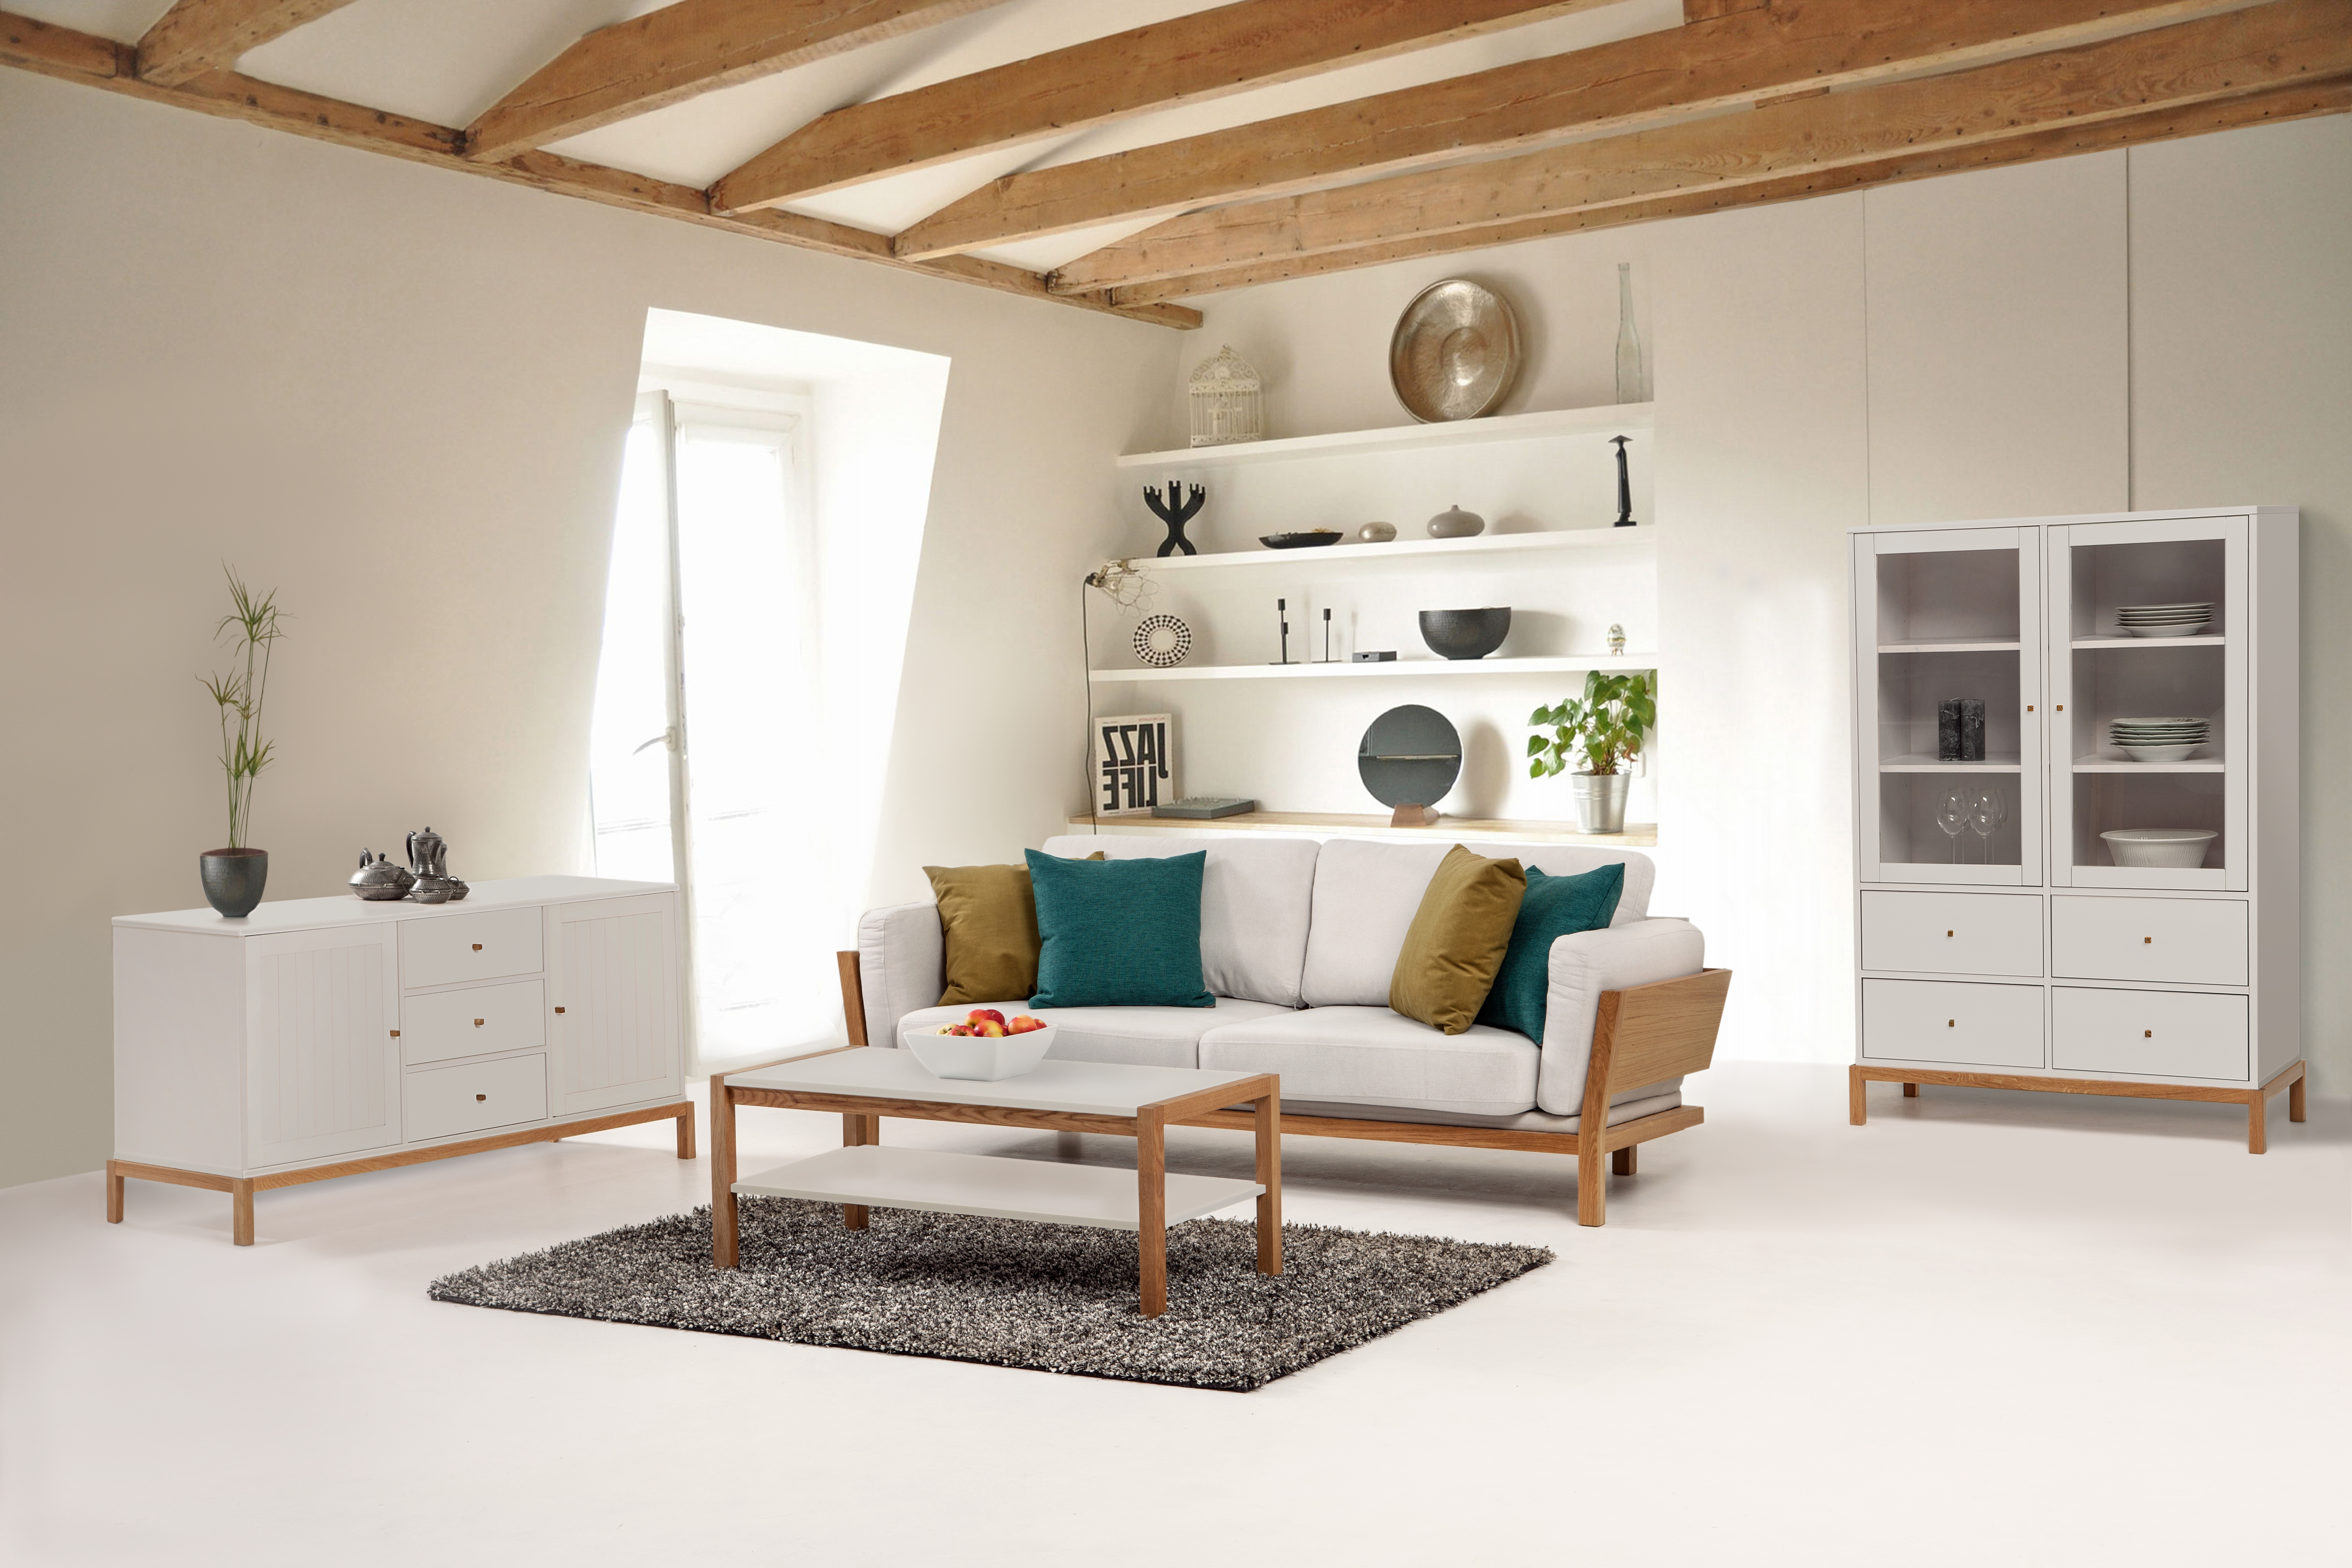 design a room with furniture. Rely_Ruumiline Design A Room With Furniture